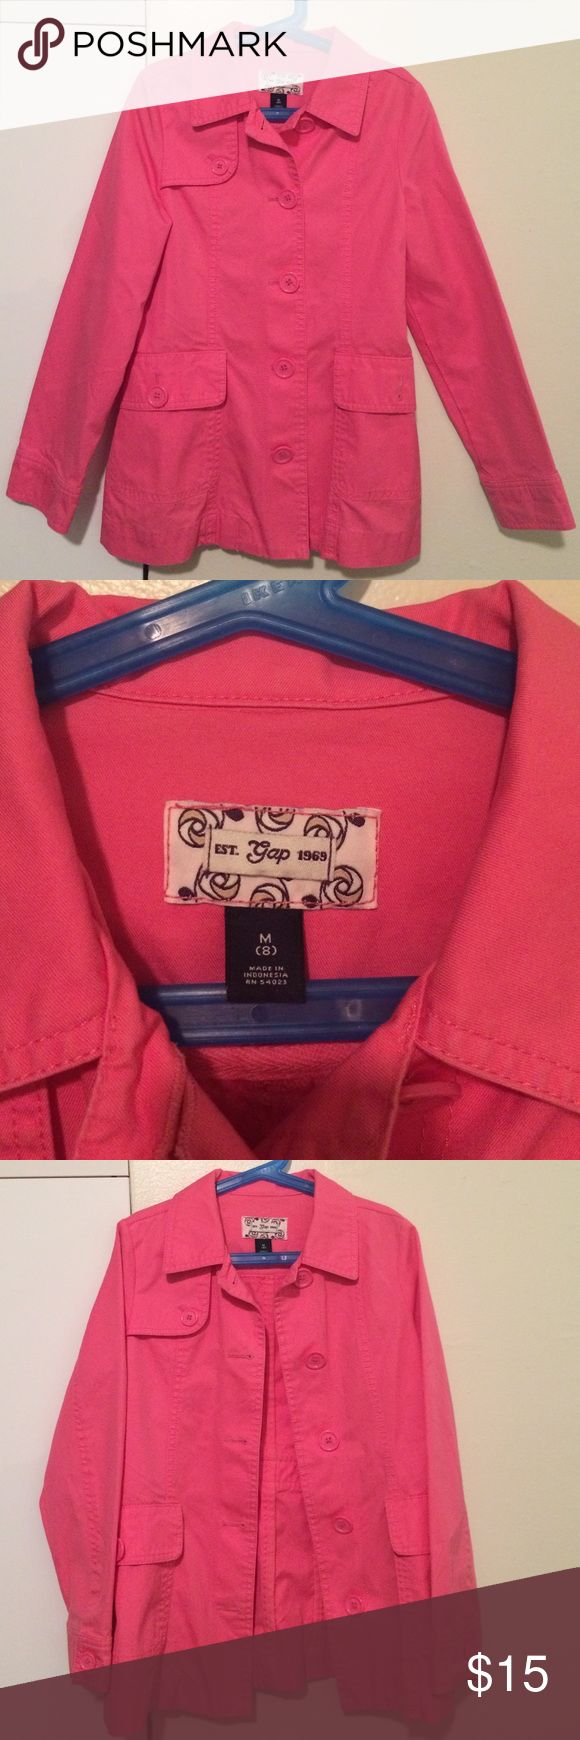 jacket from Gap❗️Make An Offer❗️ Beautiful Pink Gap jacket for girls GAP Jackets & Coats